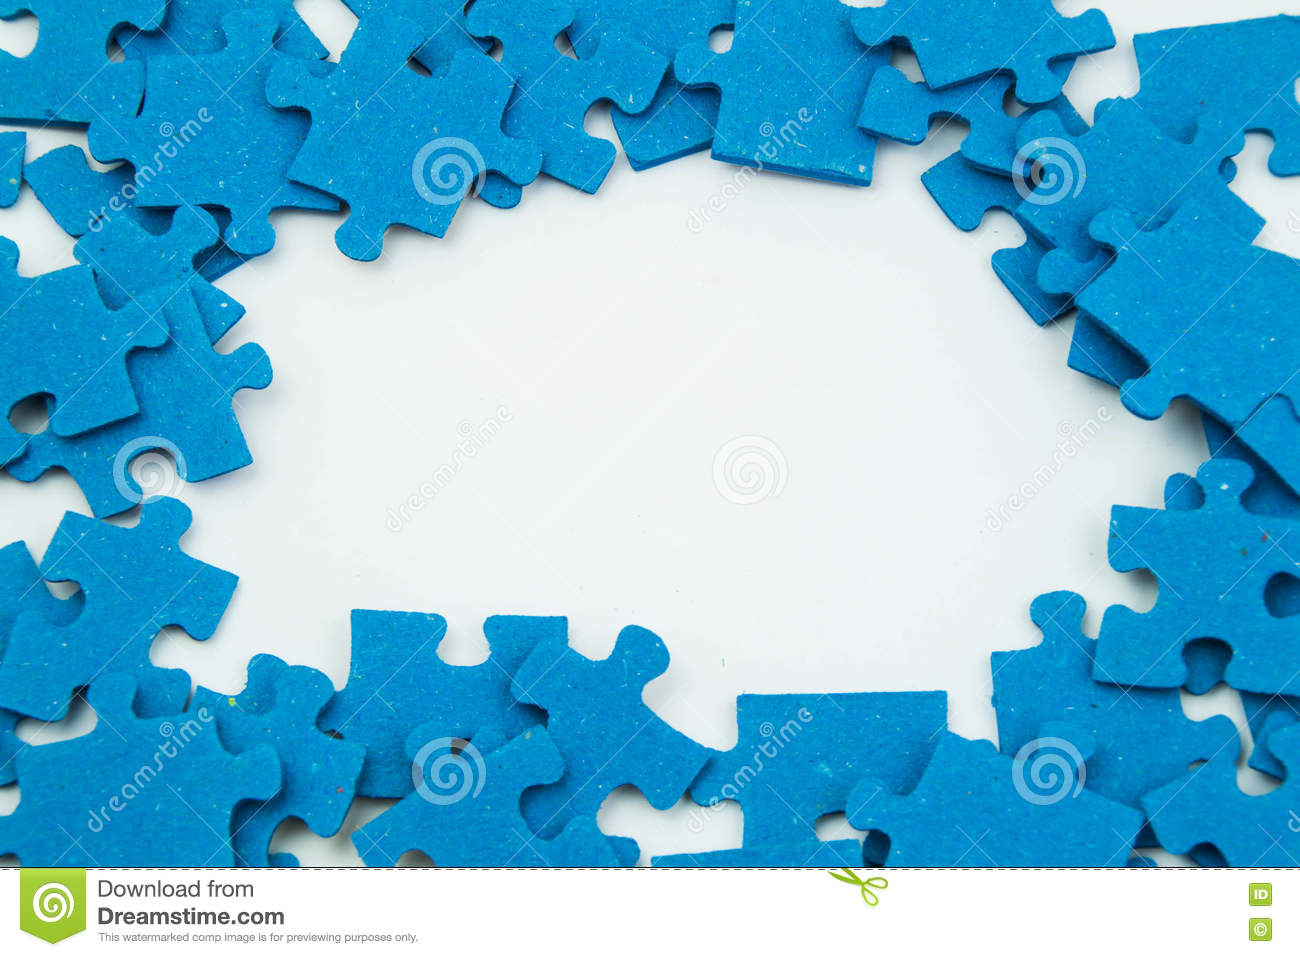 Blue puzzle pieces stock photo. Image of blue, join, background ...